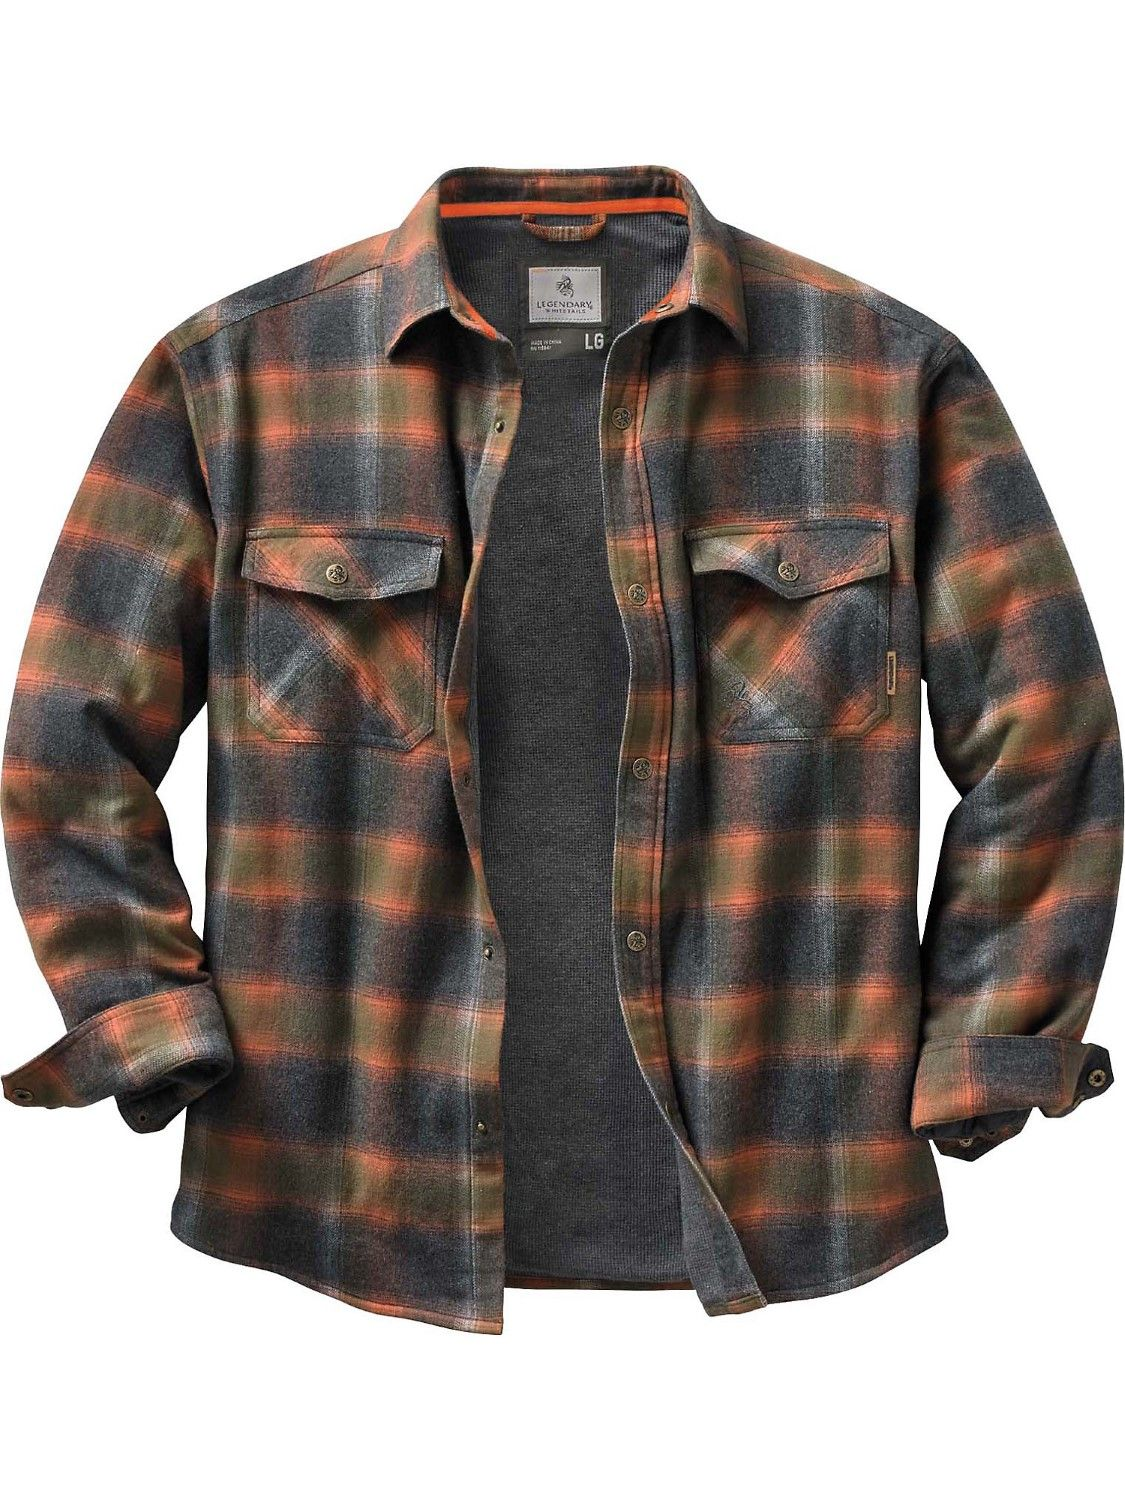 Flannel shirt with suit  Legendary Whitetails Menus Archer Thermal Lined Flannel Shirt Jacket